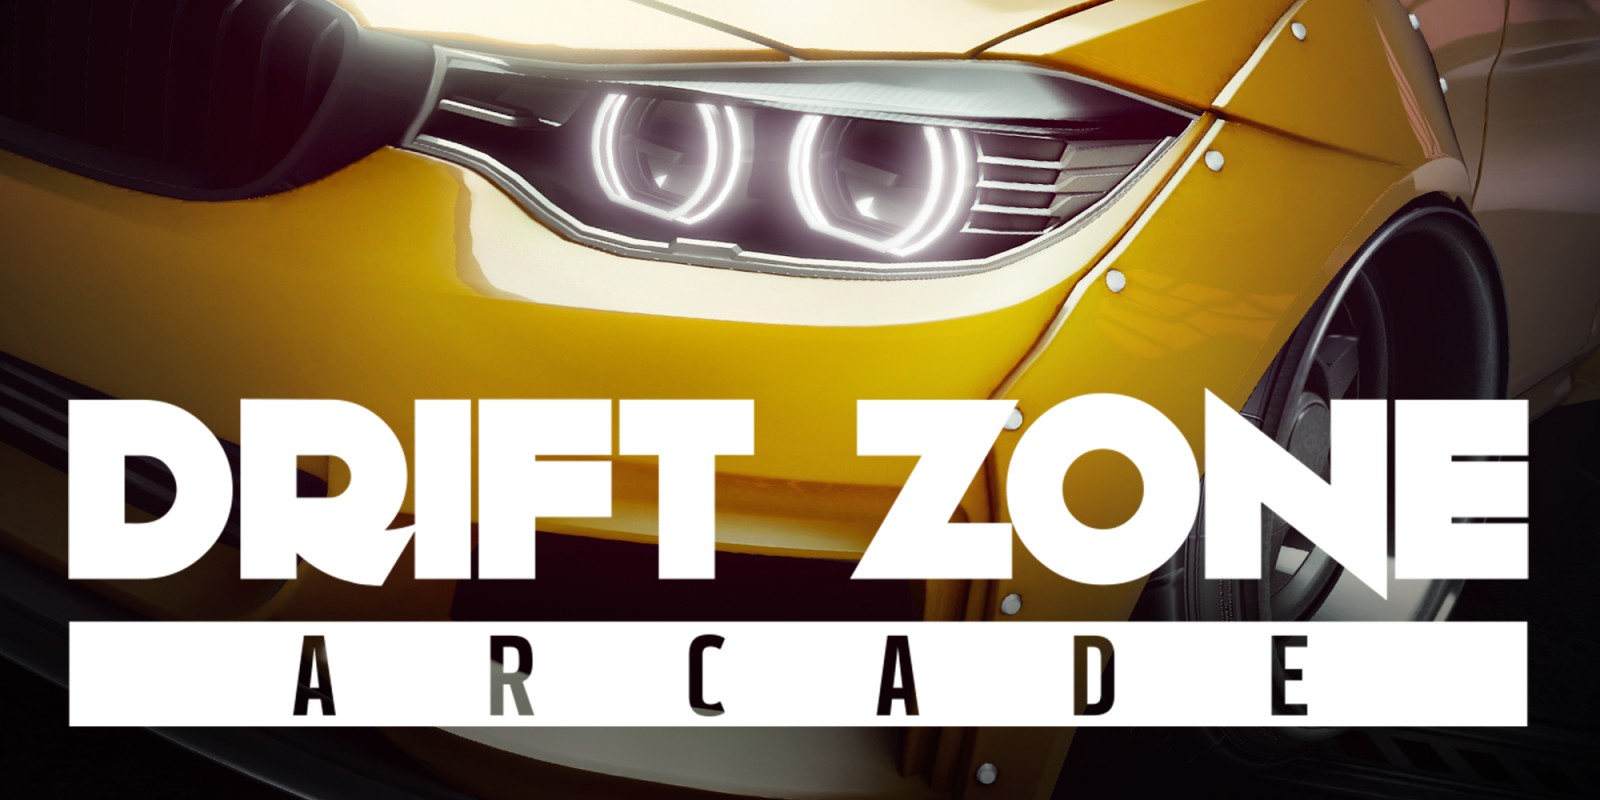 Drift Zone Arcade